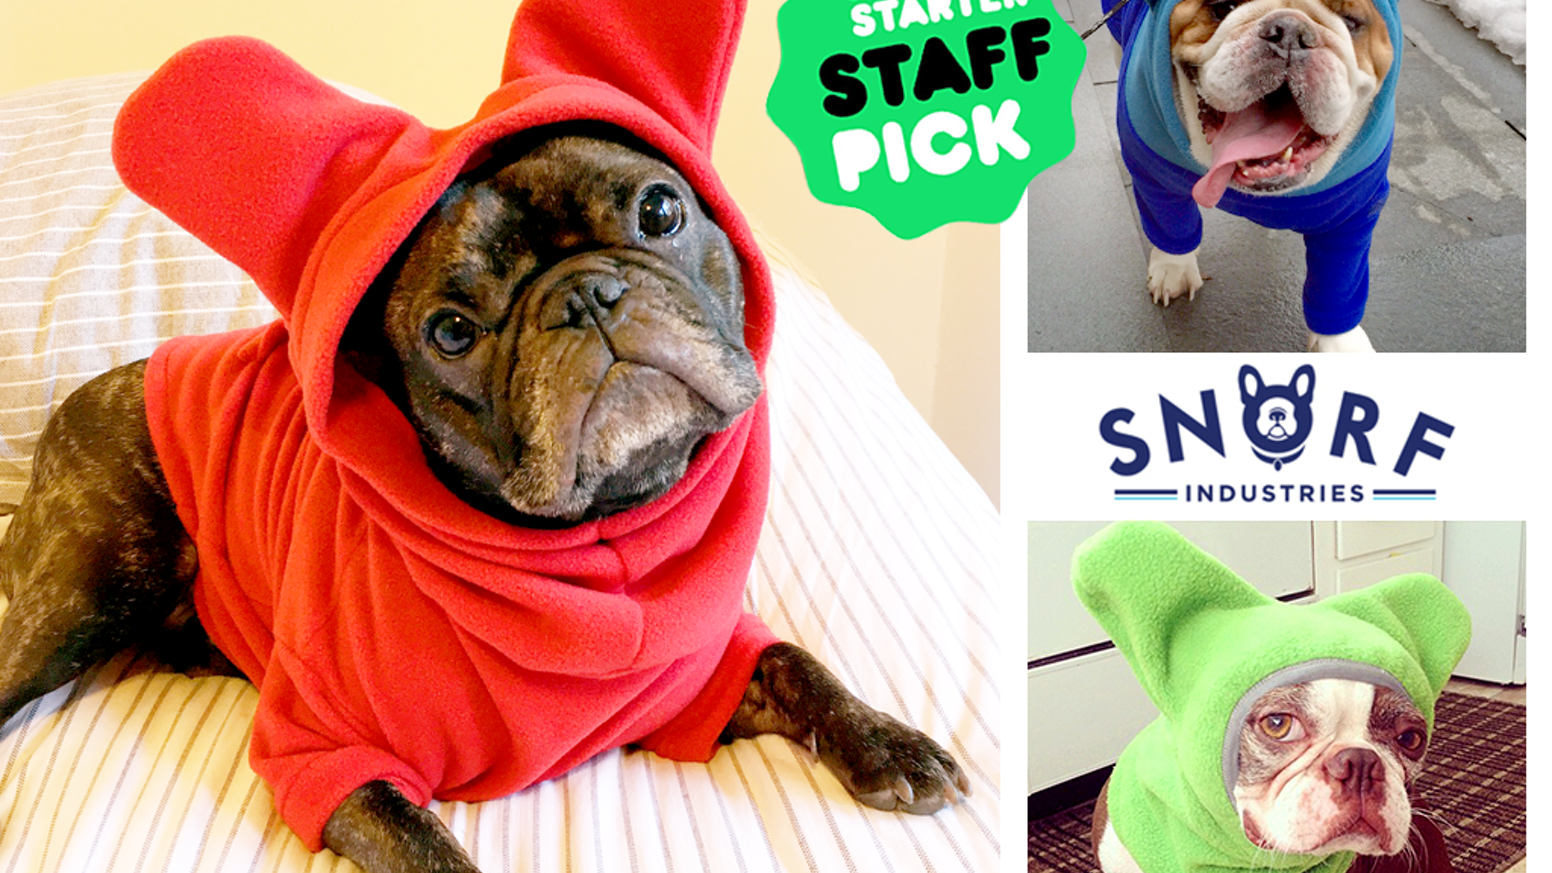 Premium apparel for French Bulldogs, English Bulldogs, Pugs, Boston Terriers, & their friends. Designed to be both fun and functional.